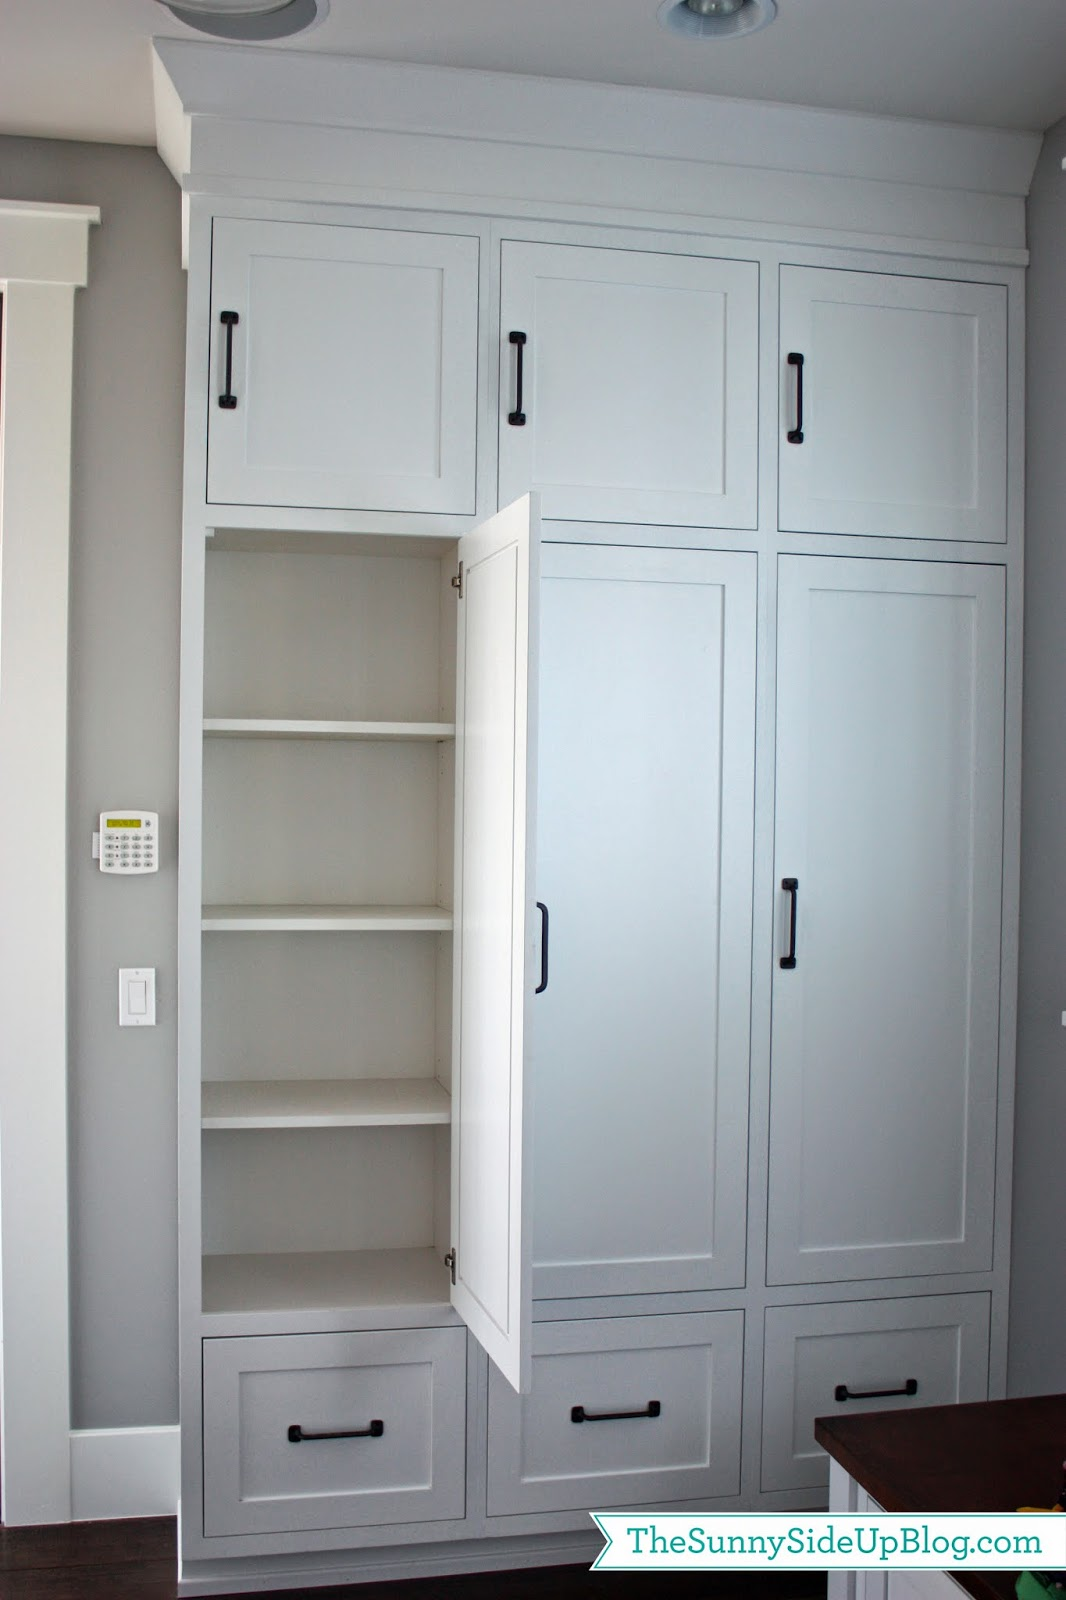 Foyer Built In Cabinets : My new organized mudroom the sunny side up